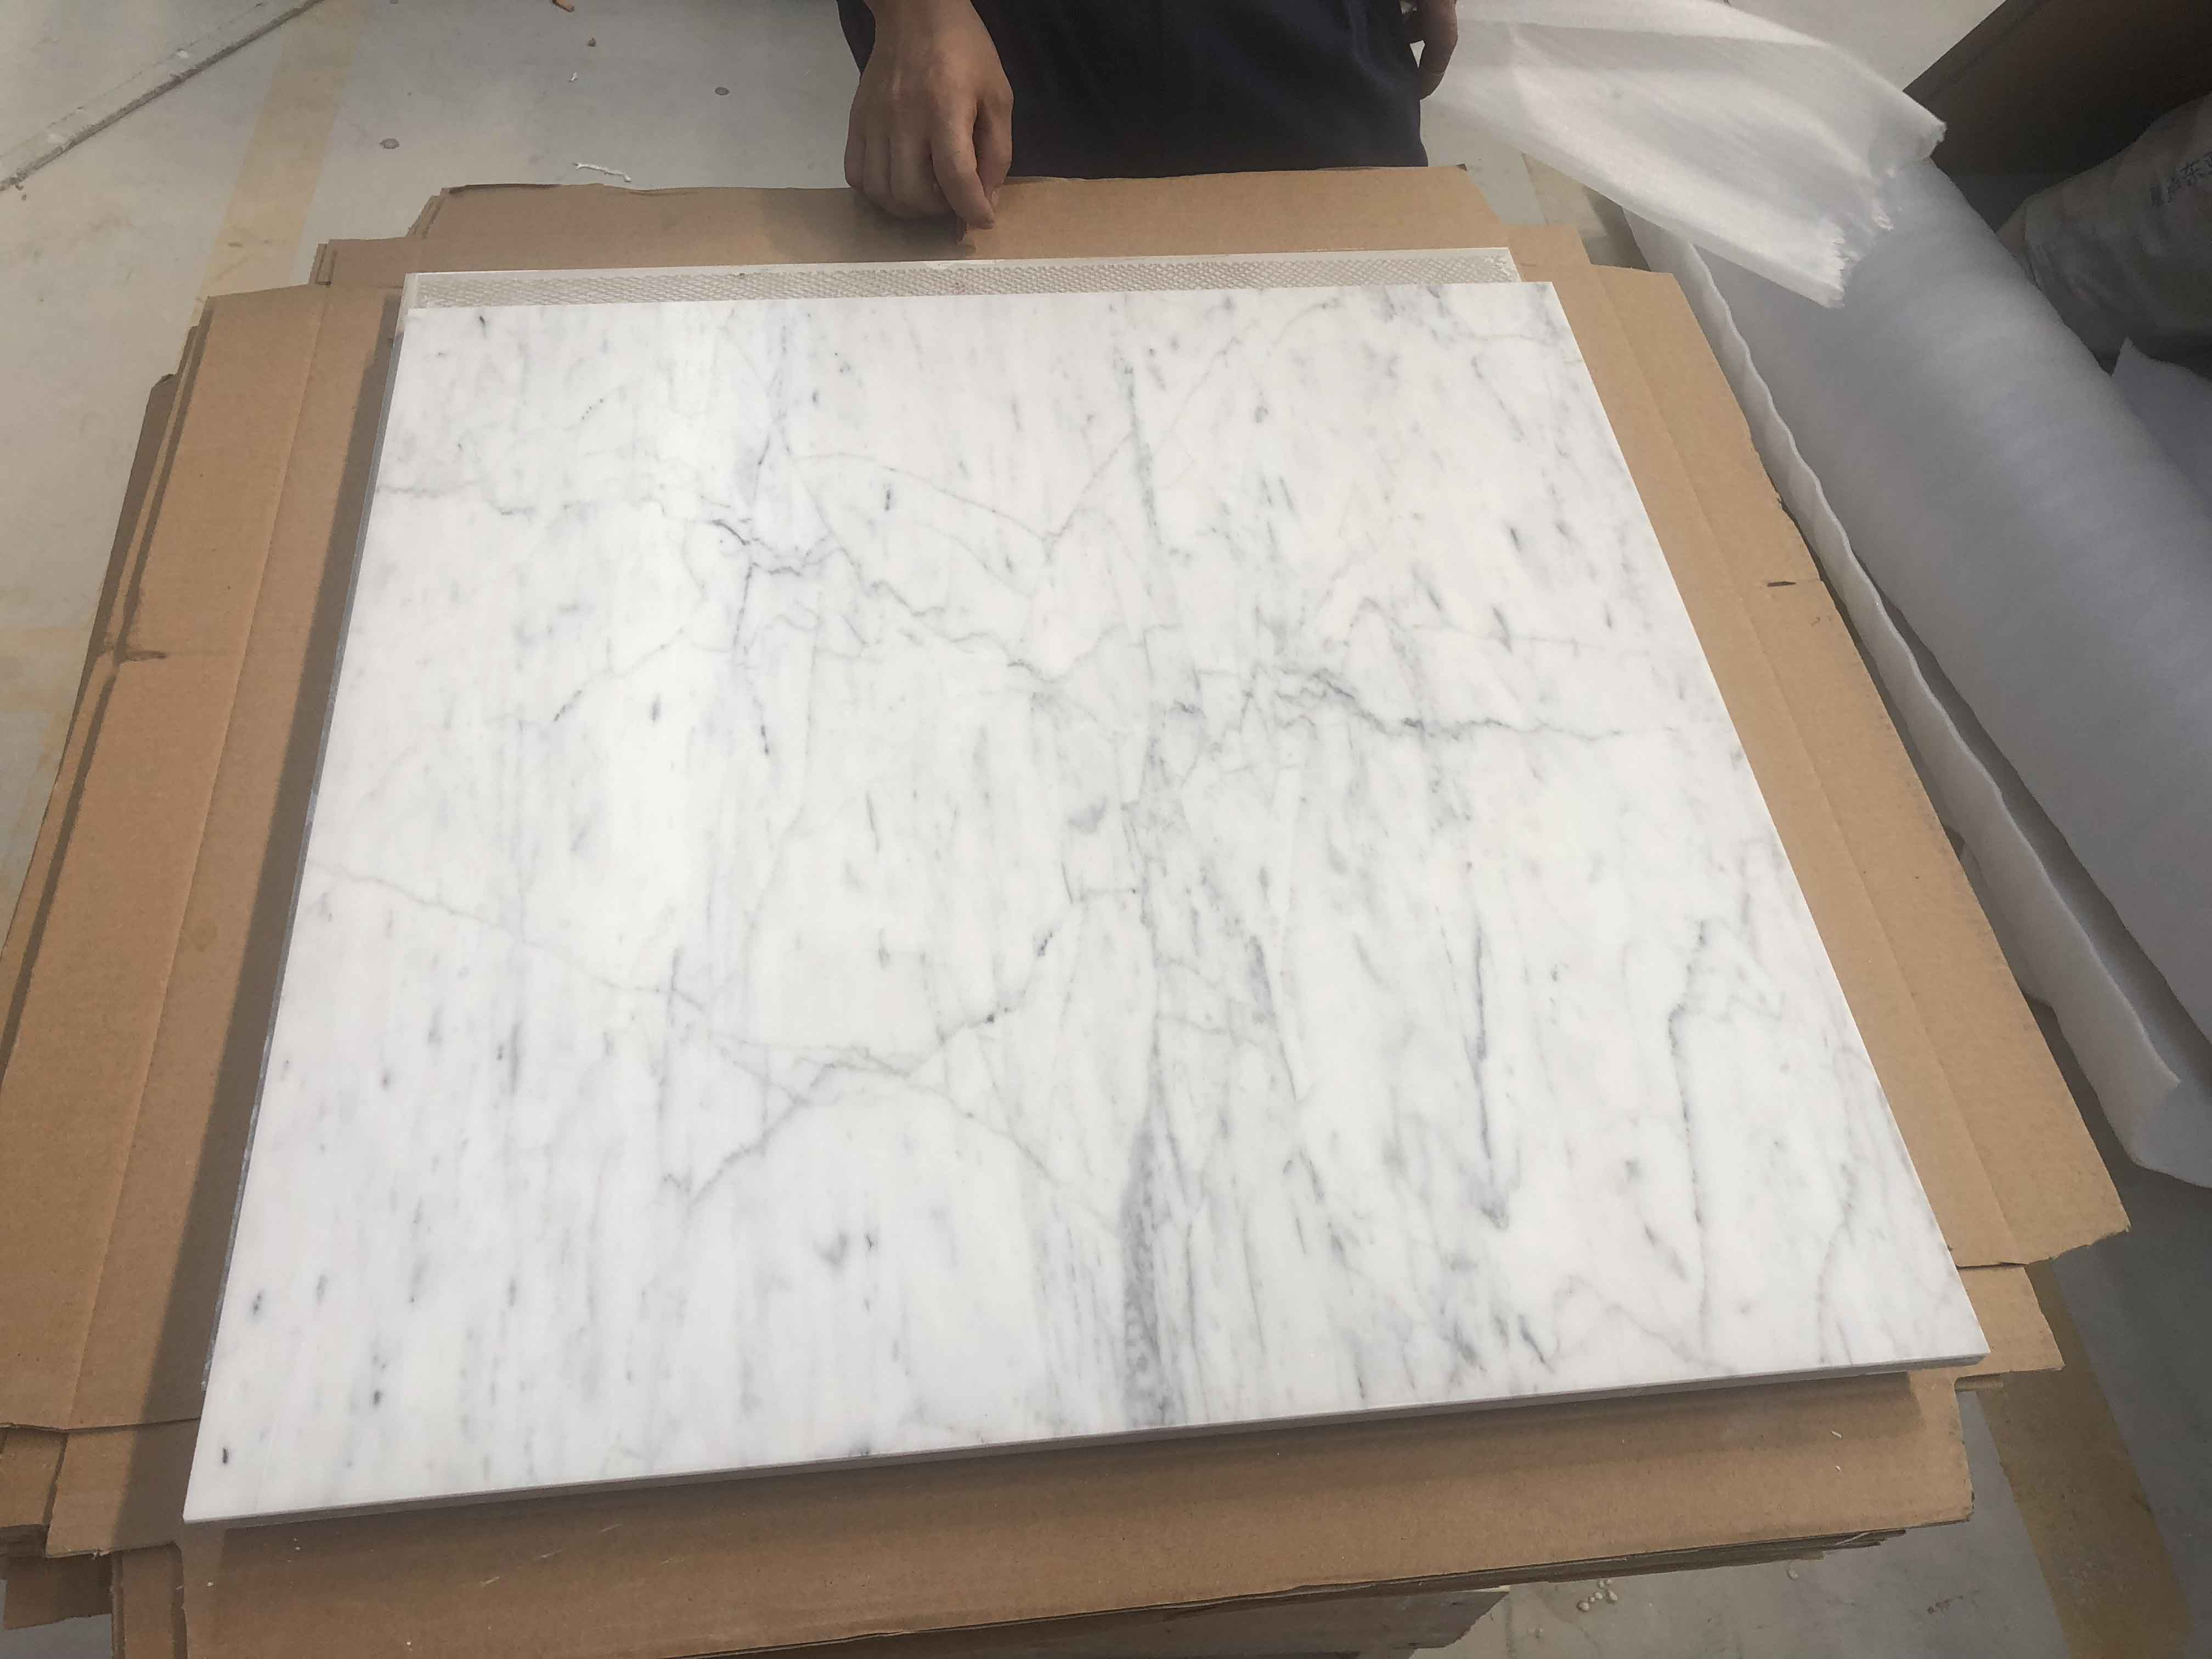 800x800mm marble tiles